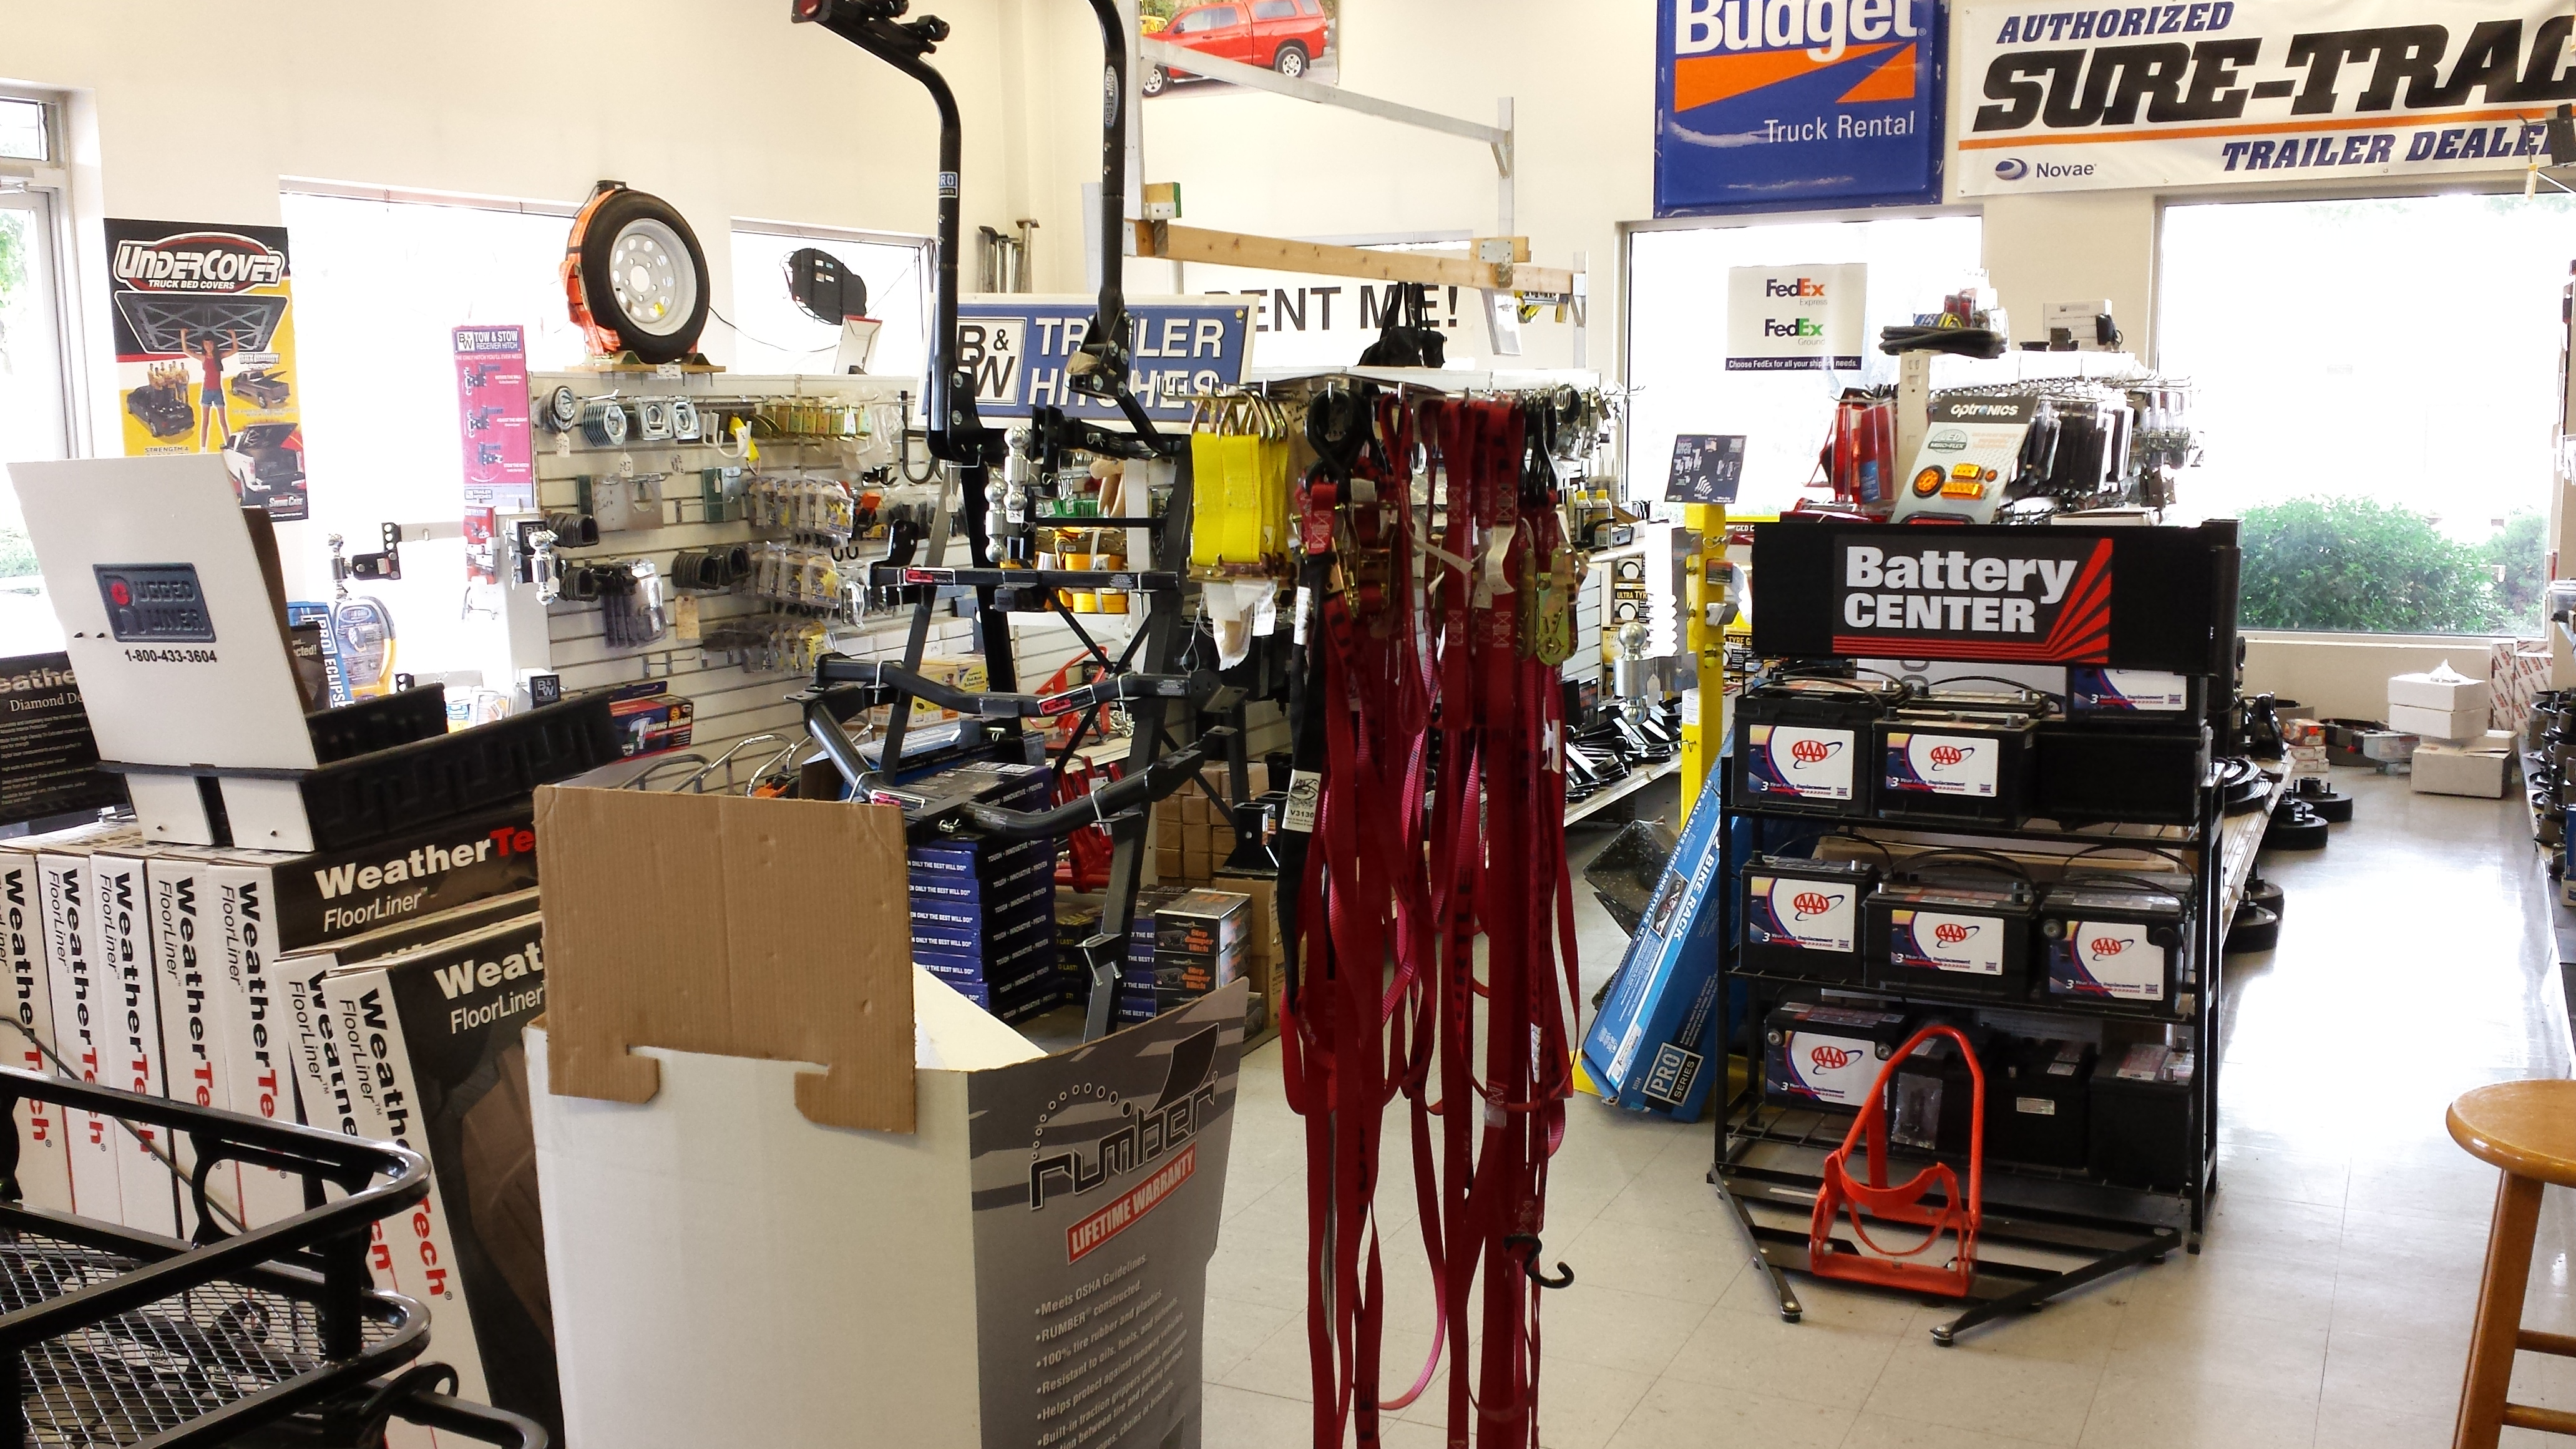 Huge showroom, parts, LED lights, brakes, accessories